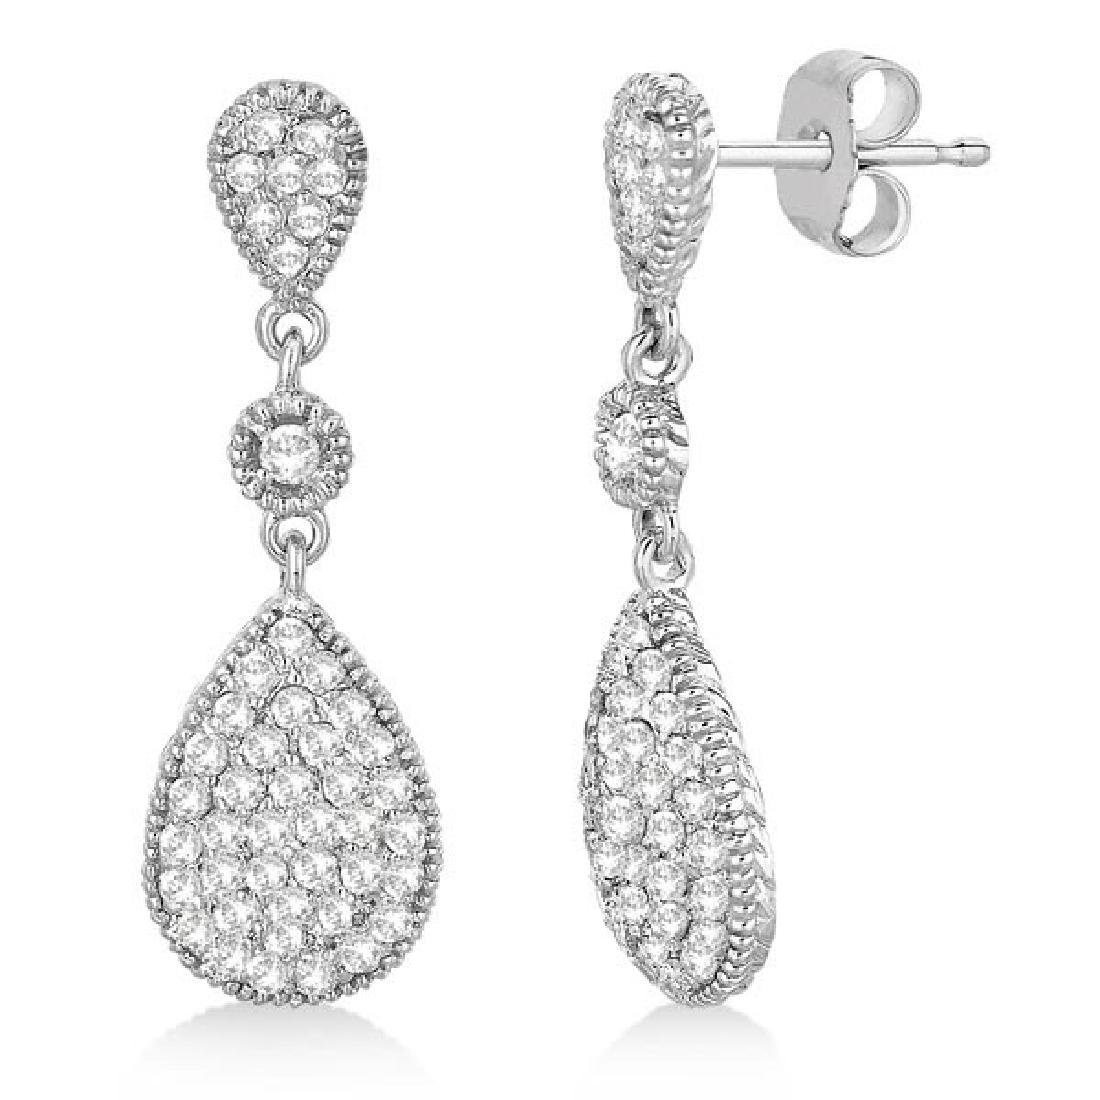 Milgrain Tear Drop Dangling Diamond Earrings 14k White